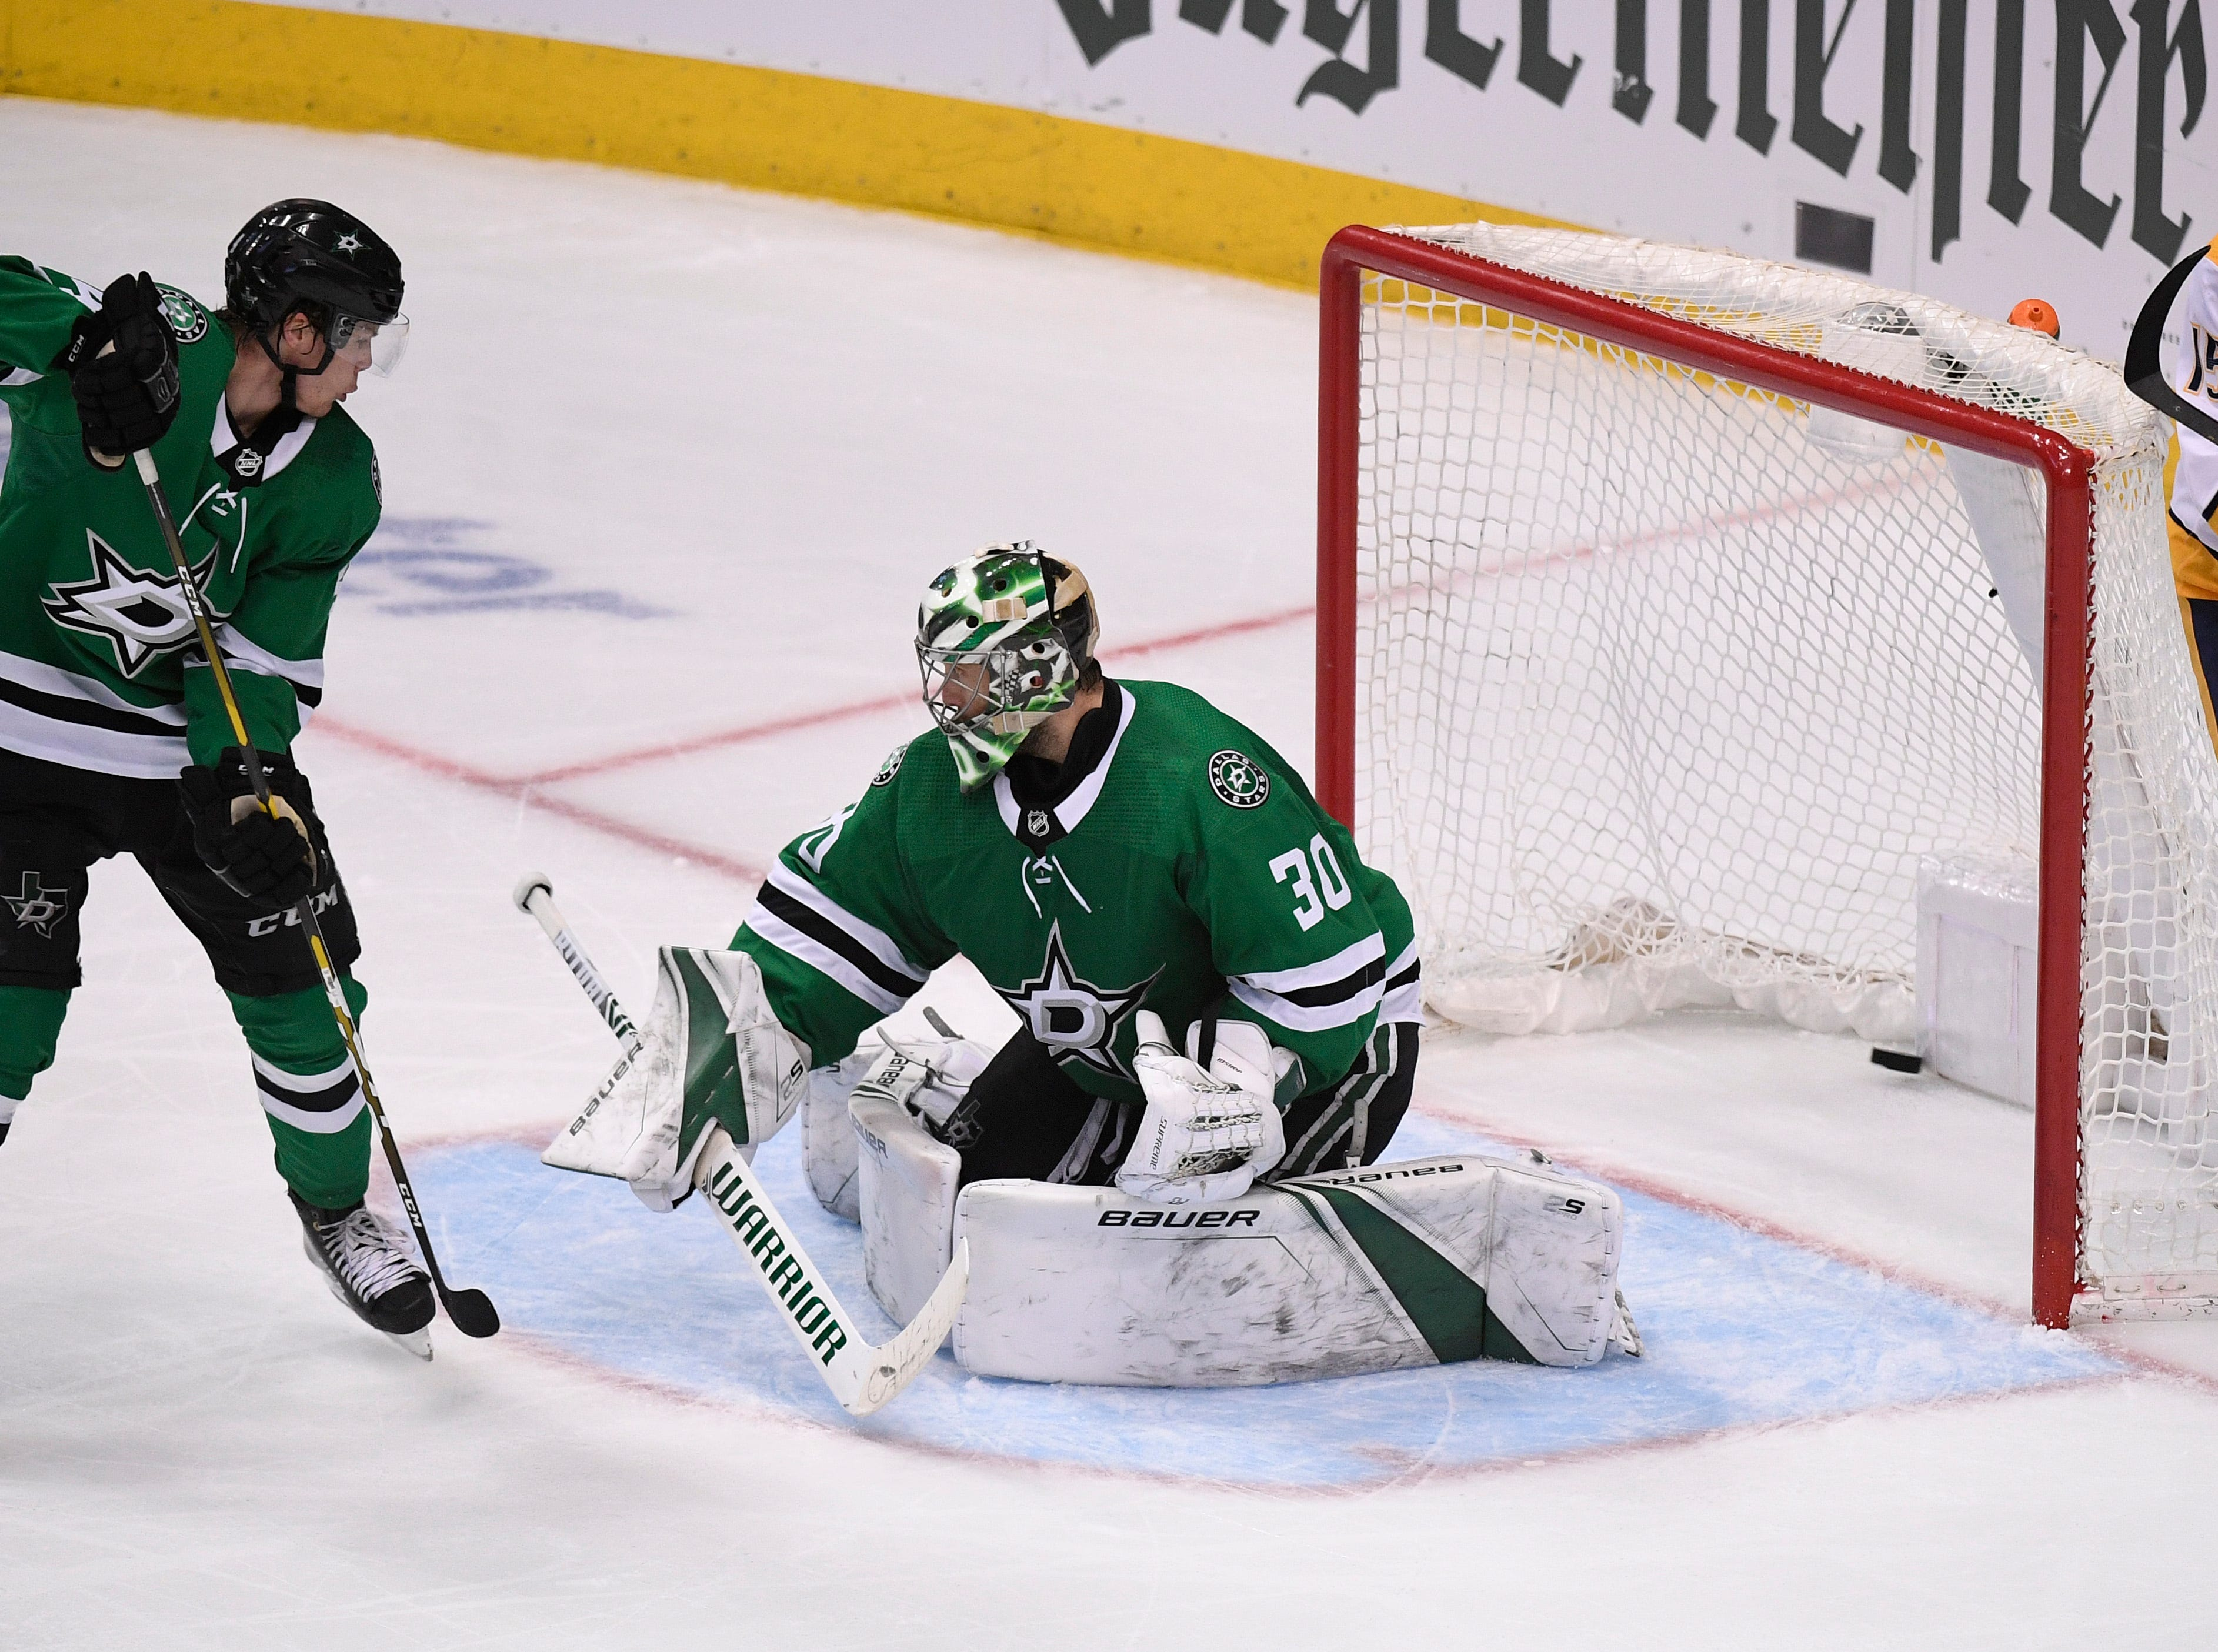 The game-winning goal by Nashville Predators center Mikael Granlund (64) gets past Dallas Stars goaltender Ben Bishop (30) during the third period of the divisional semifinal game at the American Airlines Center in Dallas, Texas., Monday, April 15, 2019.